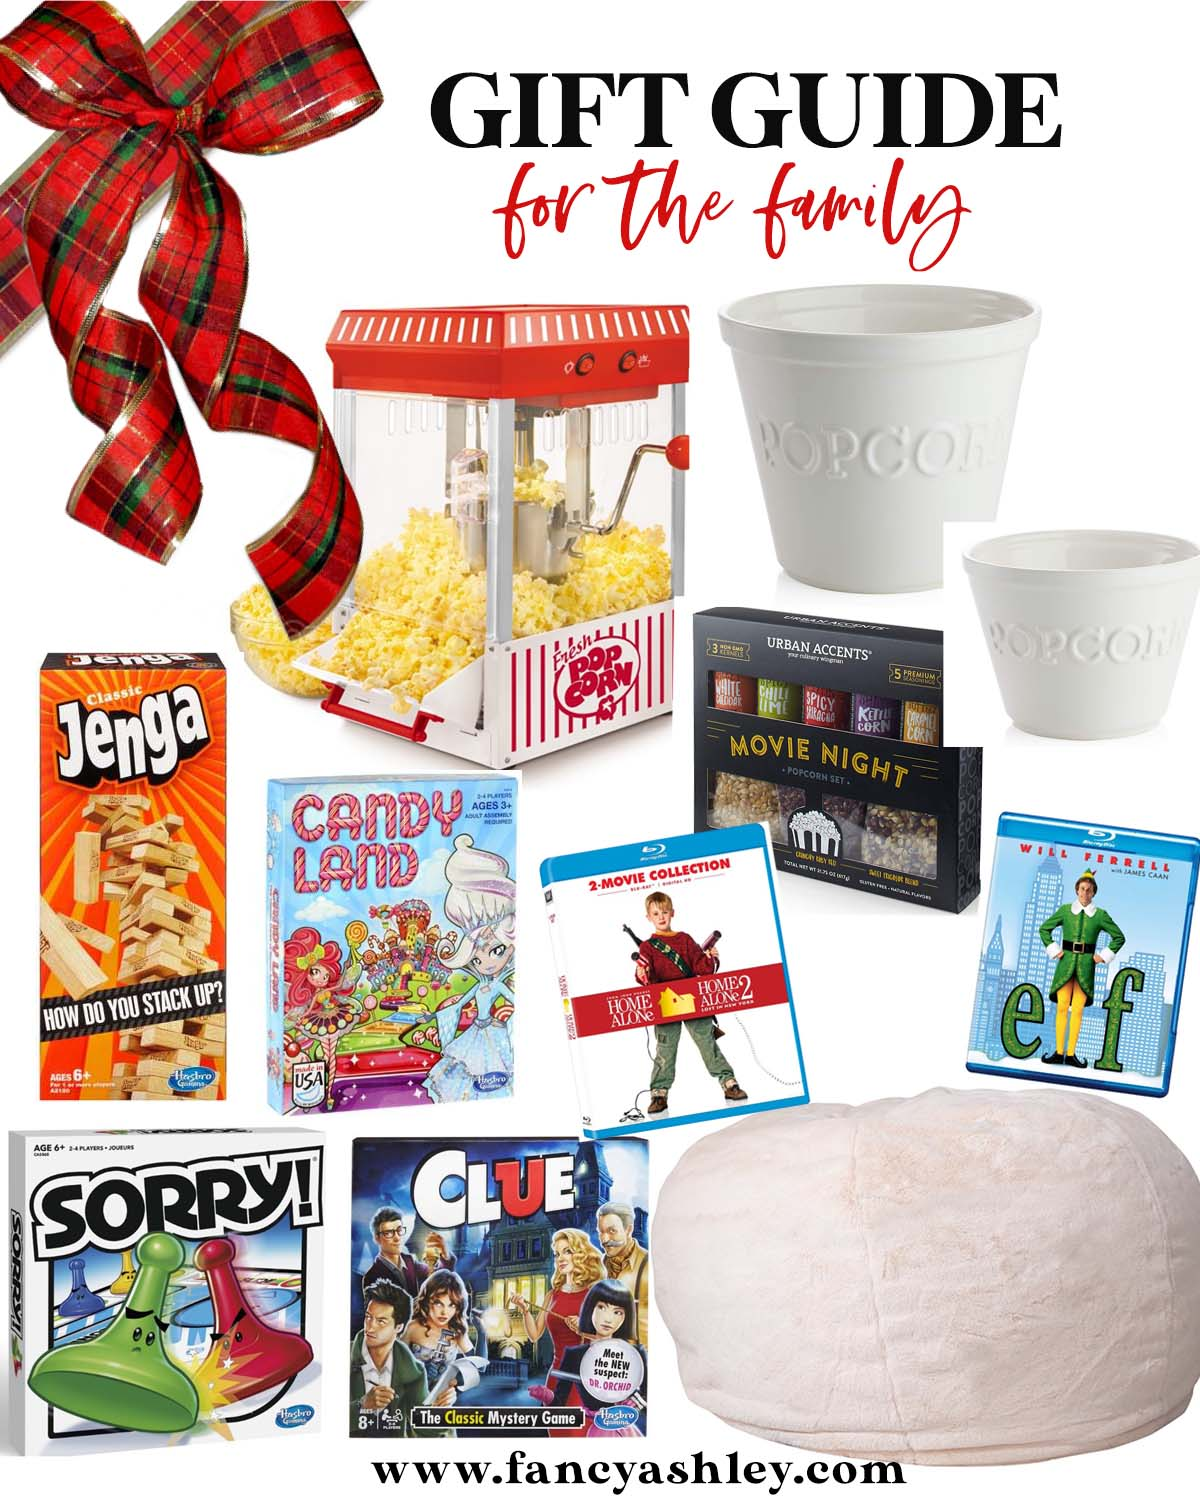 Family Gift Ideas by popular Houston life and style blog, Fancy Ashley: collage image of a popcorn popper, ceramic popcorn bowls, Jenga, Candy Land, Home ALone 2 DVD, Elf DVD, Sorry board game, CLue board game, Movie night snack set, and bean bag.